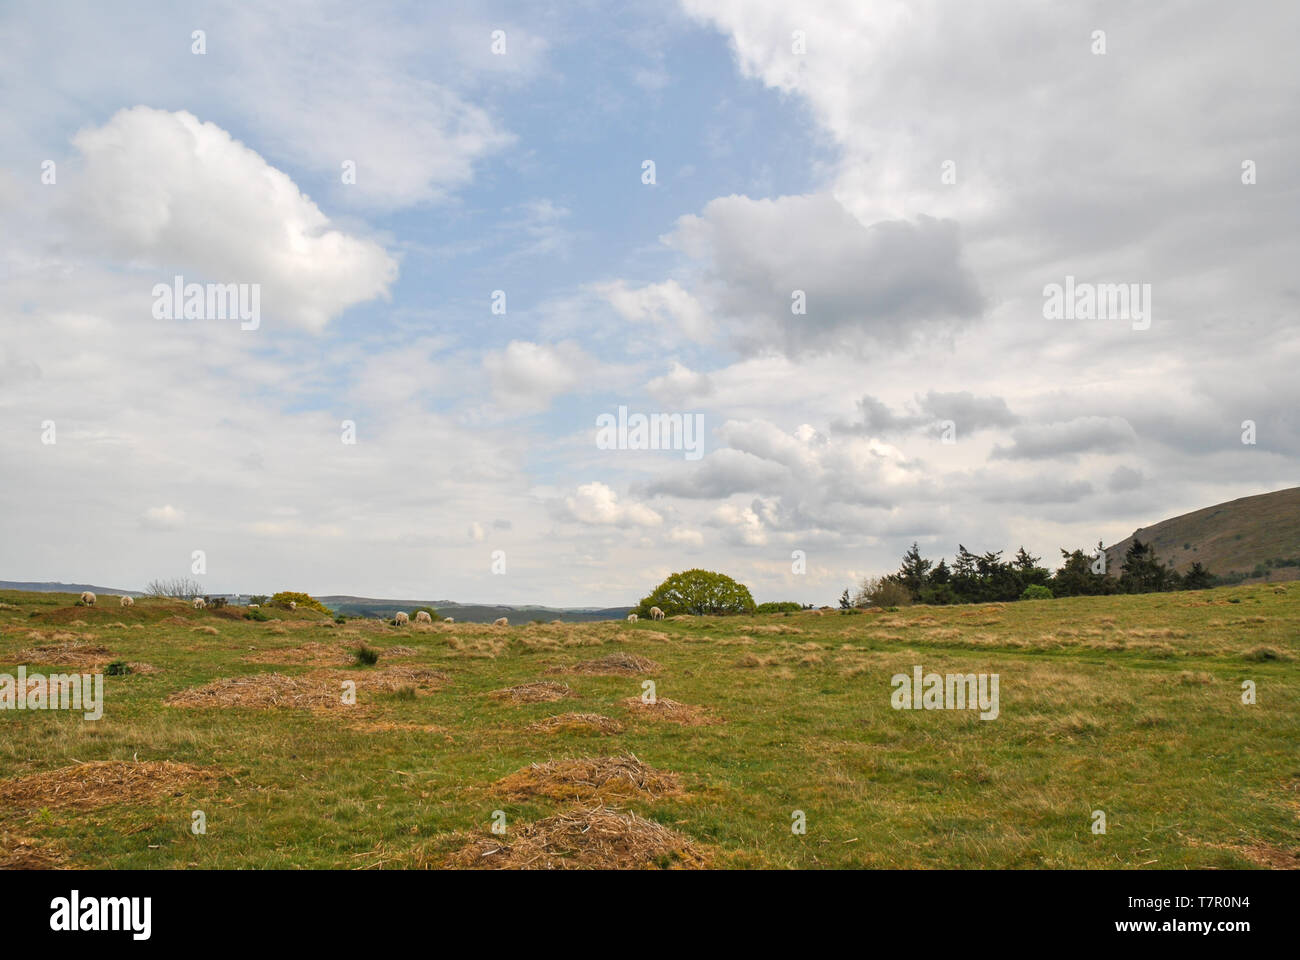 A landscpae photo showing contrasting clouds and blue sky - Stock Image